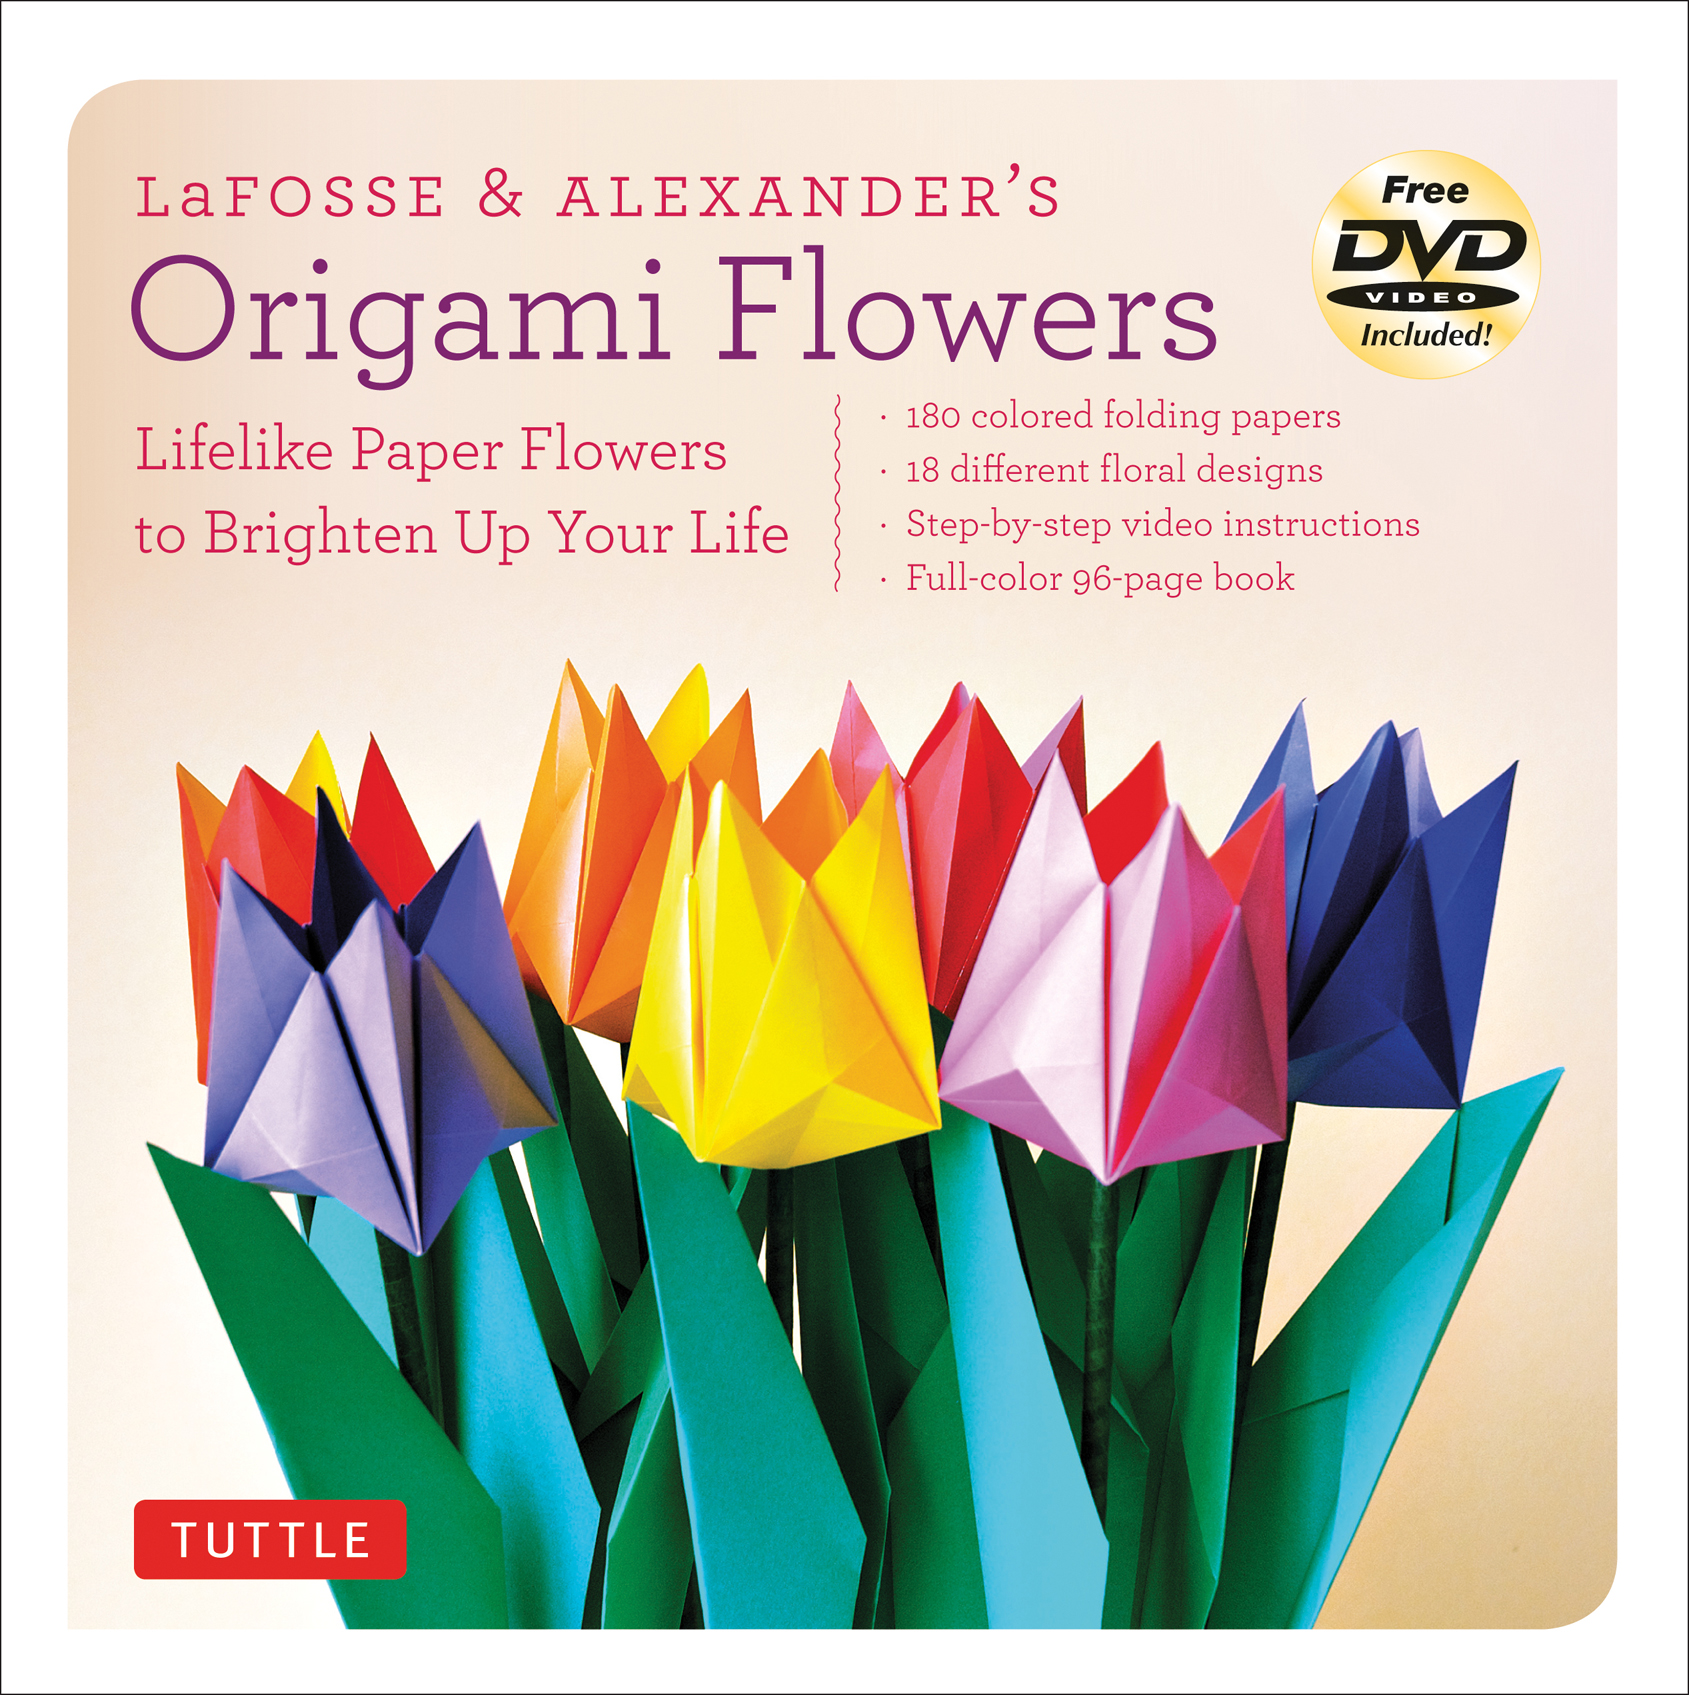 Lafosse alexanders origami flowers kit videos and pdf 9780804843126g mightylinksfo